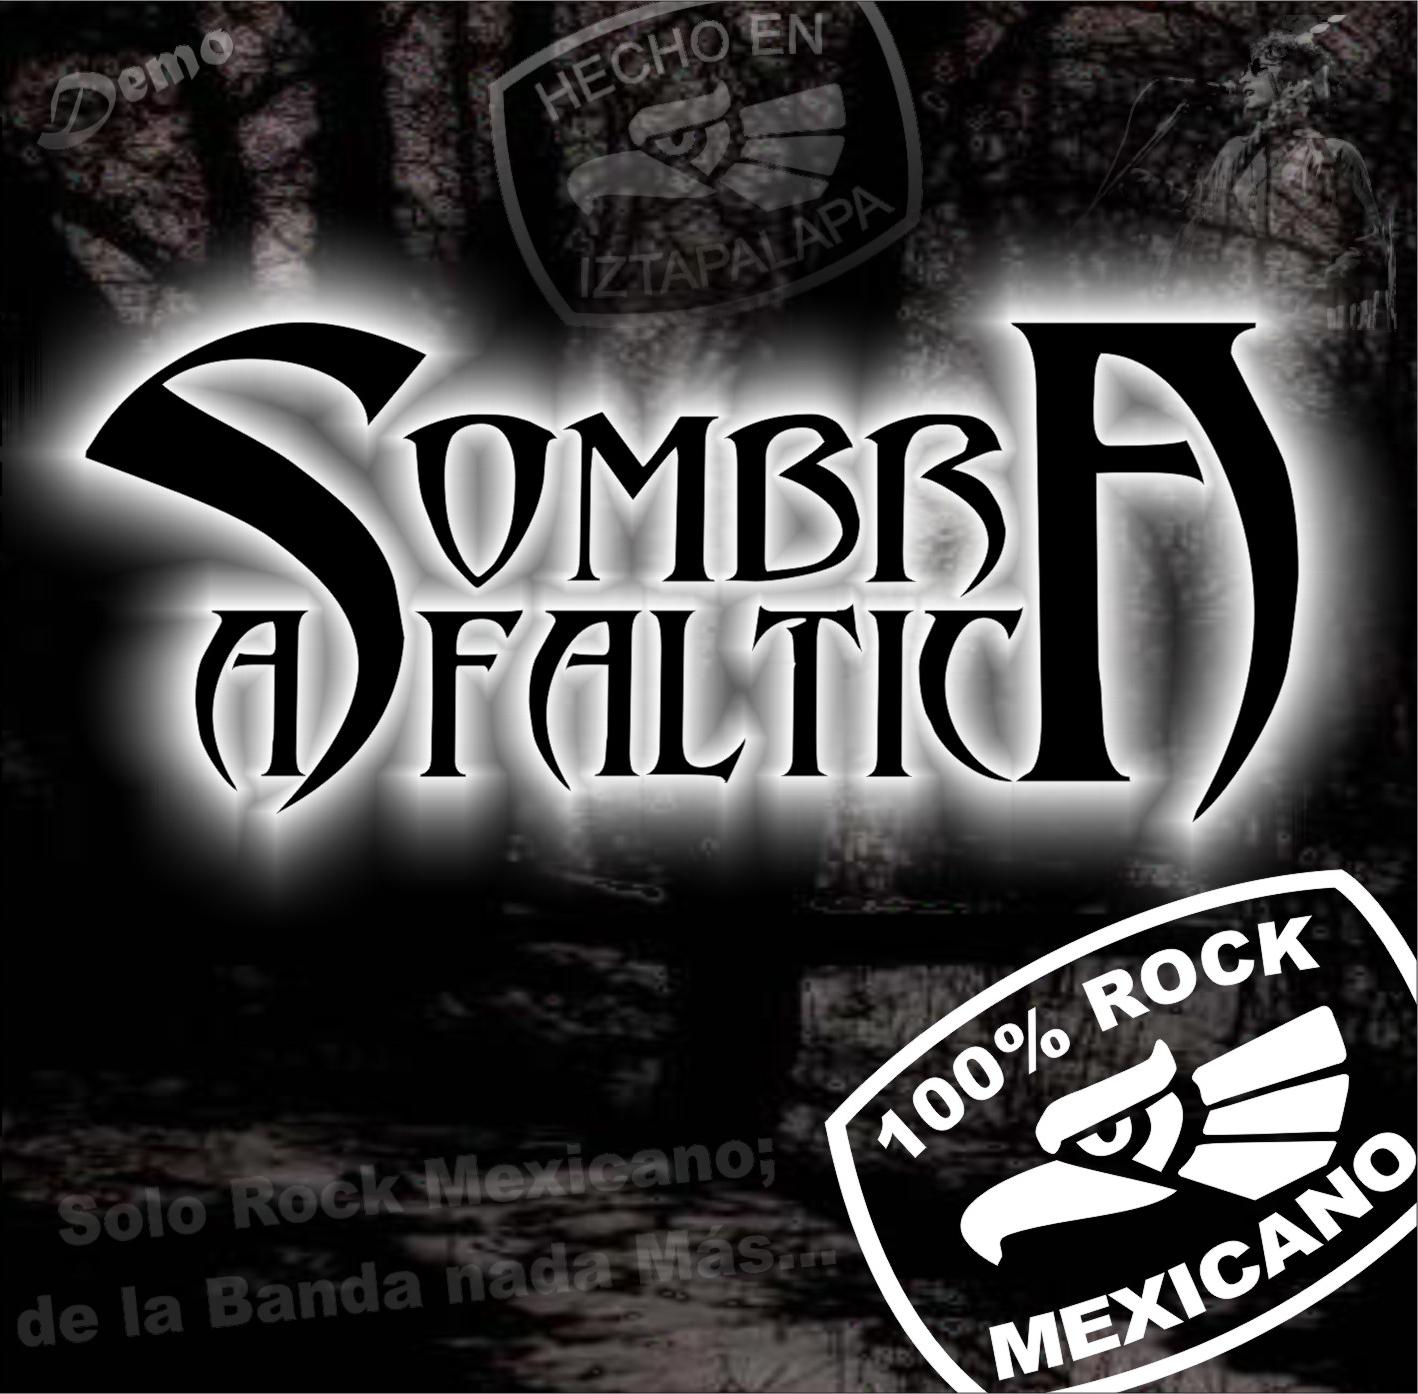 Sombra asfáltica – 100% rock mexicano (demo)